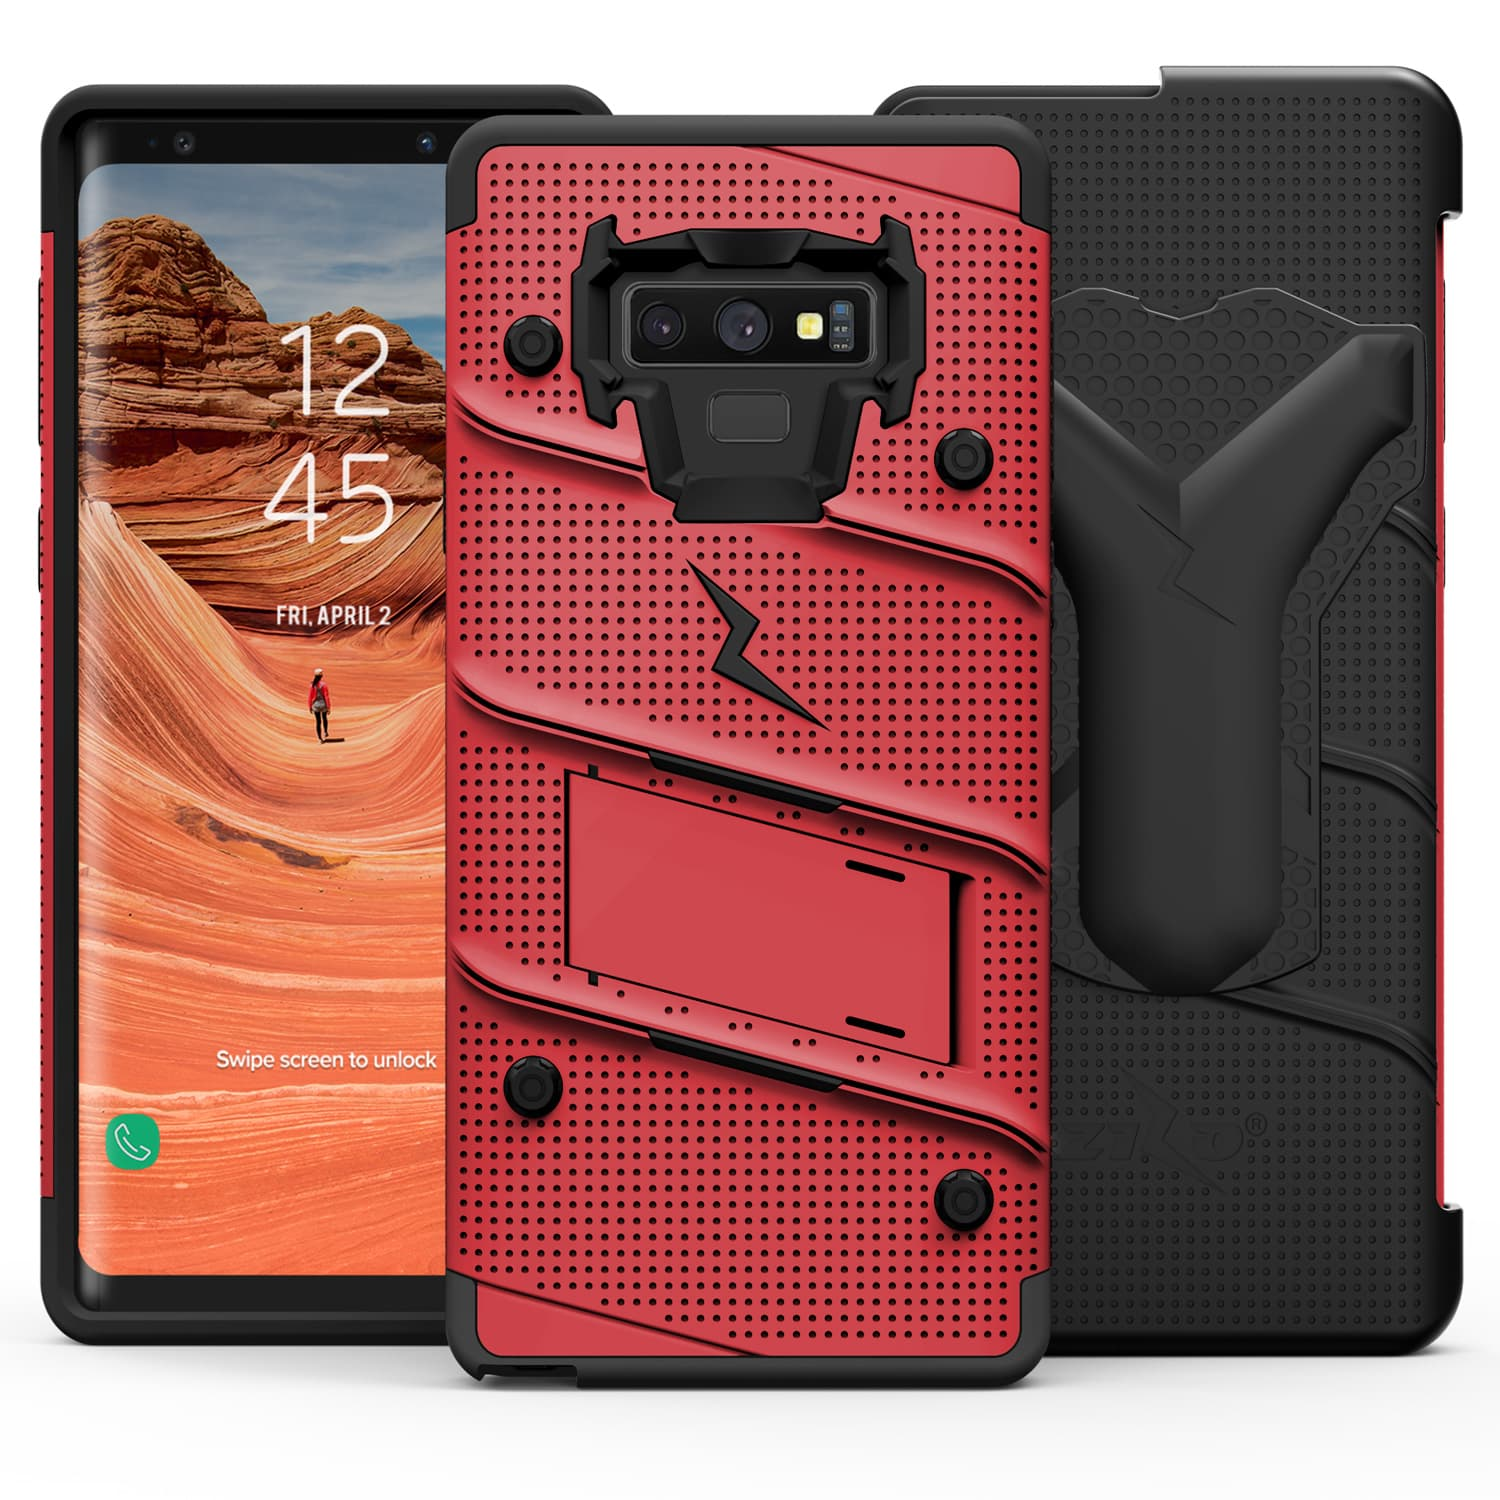 online store a4e7a 4ca98 Details about Samsung Galaxy Note 9 case, Zizo BOLT with Screen Protector,  Holster & Kickstand